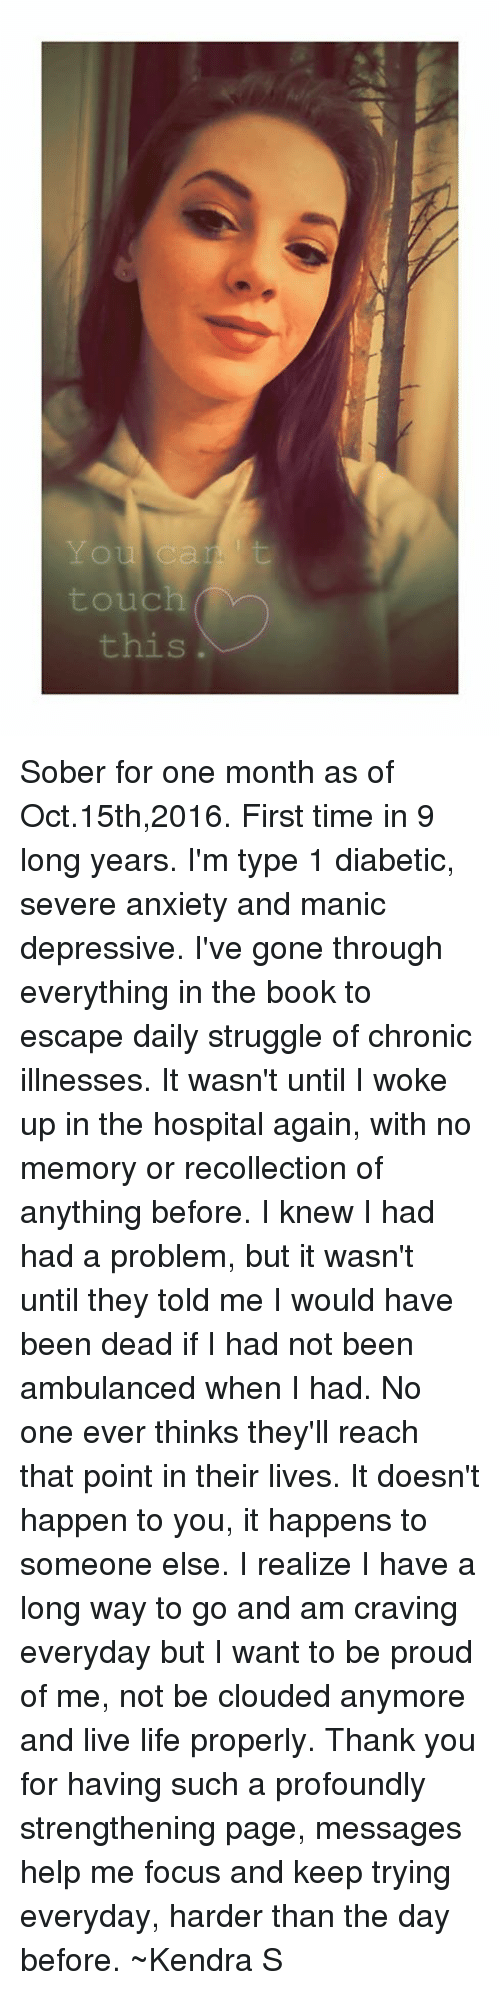 Chronic Illness: You can : t  01  touch  this Sober for one month as of Oct.15th,2016. First time in 9 long years.  I'm type 1 diabetic, severe anxiety and manic depressive. I've gone through everything in the book to escape daily struggle of chronic illnesses. It wasn't until I woke up in the hospital again, with no memory or recollection of anything before. I knew I had had a problem, but it wasn't until they told me I would have been dead if I had not been ambulanced when I had. No one ever thinks they'll reach that point in their lives. It doesn't happen to you, it happens to someone else. I realize I have a long way to go and am craving everyday but I want to be proud of me, not be clouded anymore and live life properly. Thank you for having such a profoundly strengthening page, messages help me focus and keep trying everyday, harder than the day before.  ~Kendra S